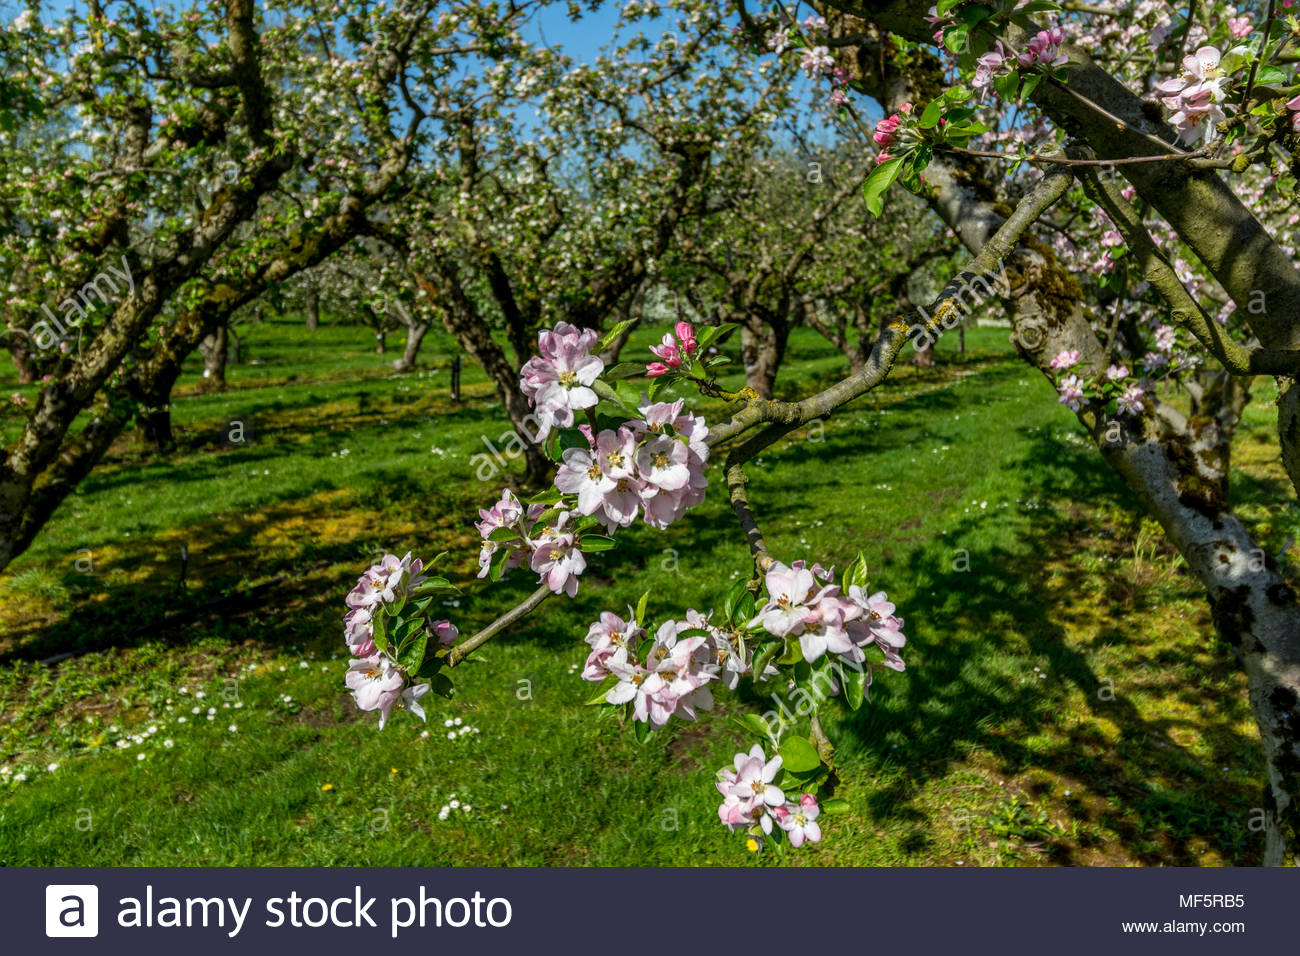 Close-up of the blossom of an English apple variety 'Brownlees Russet'  in an apple orchard in Spring. - Stock Image